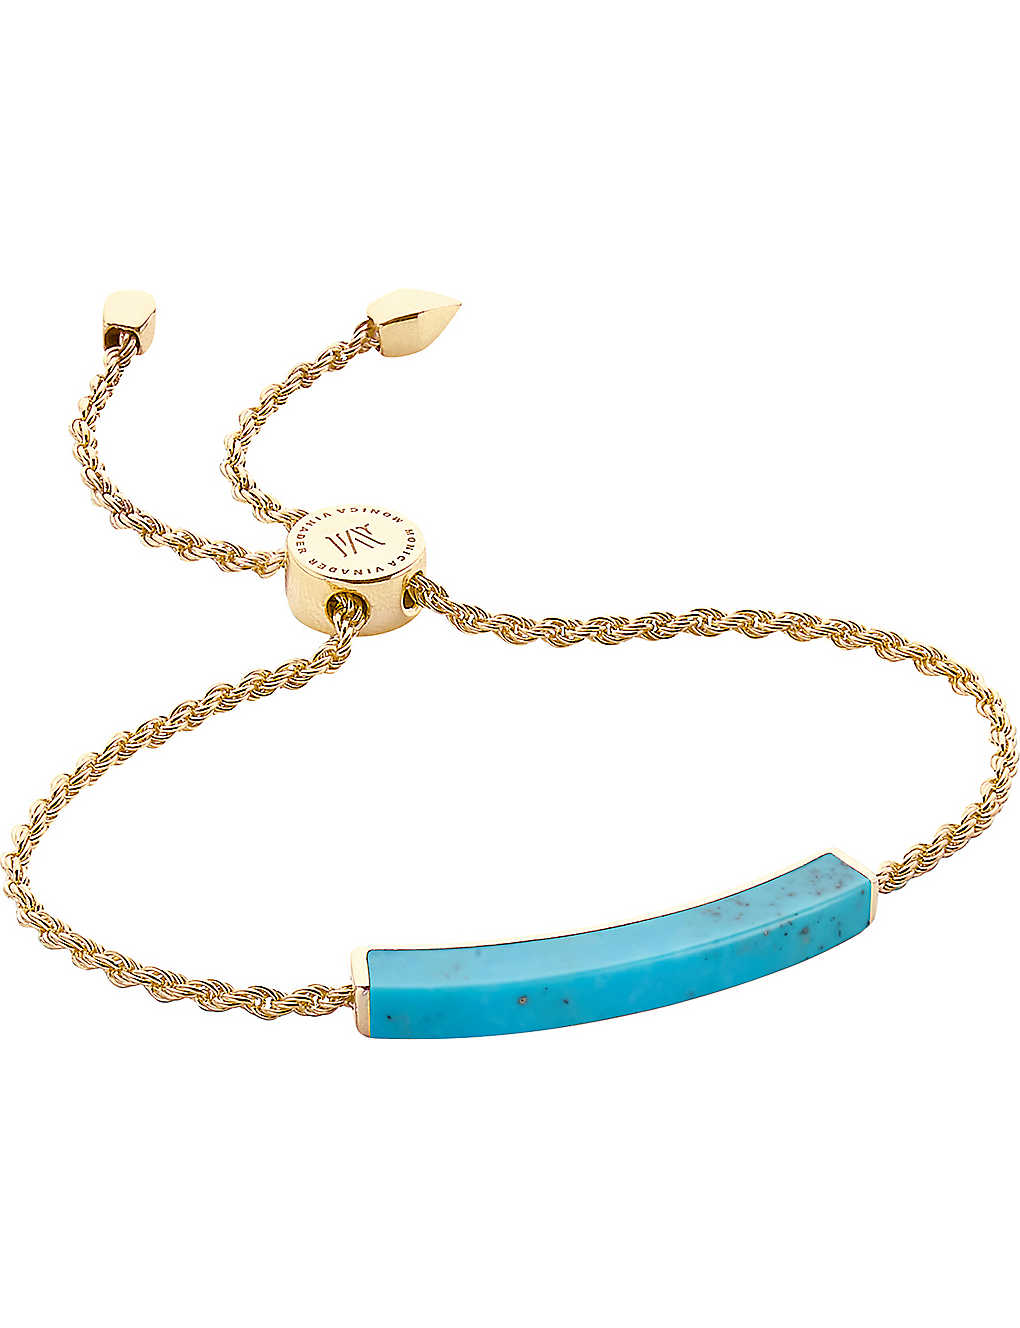 MONICA VINADER: Linear 18ct gold-plated turquoise bracelet